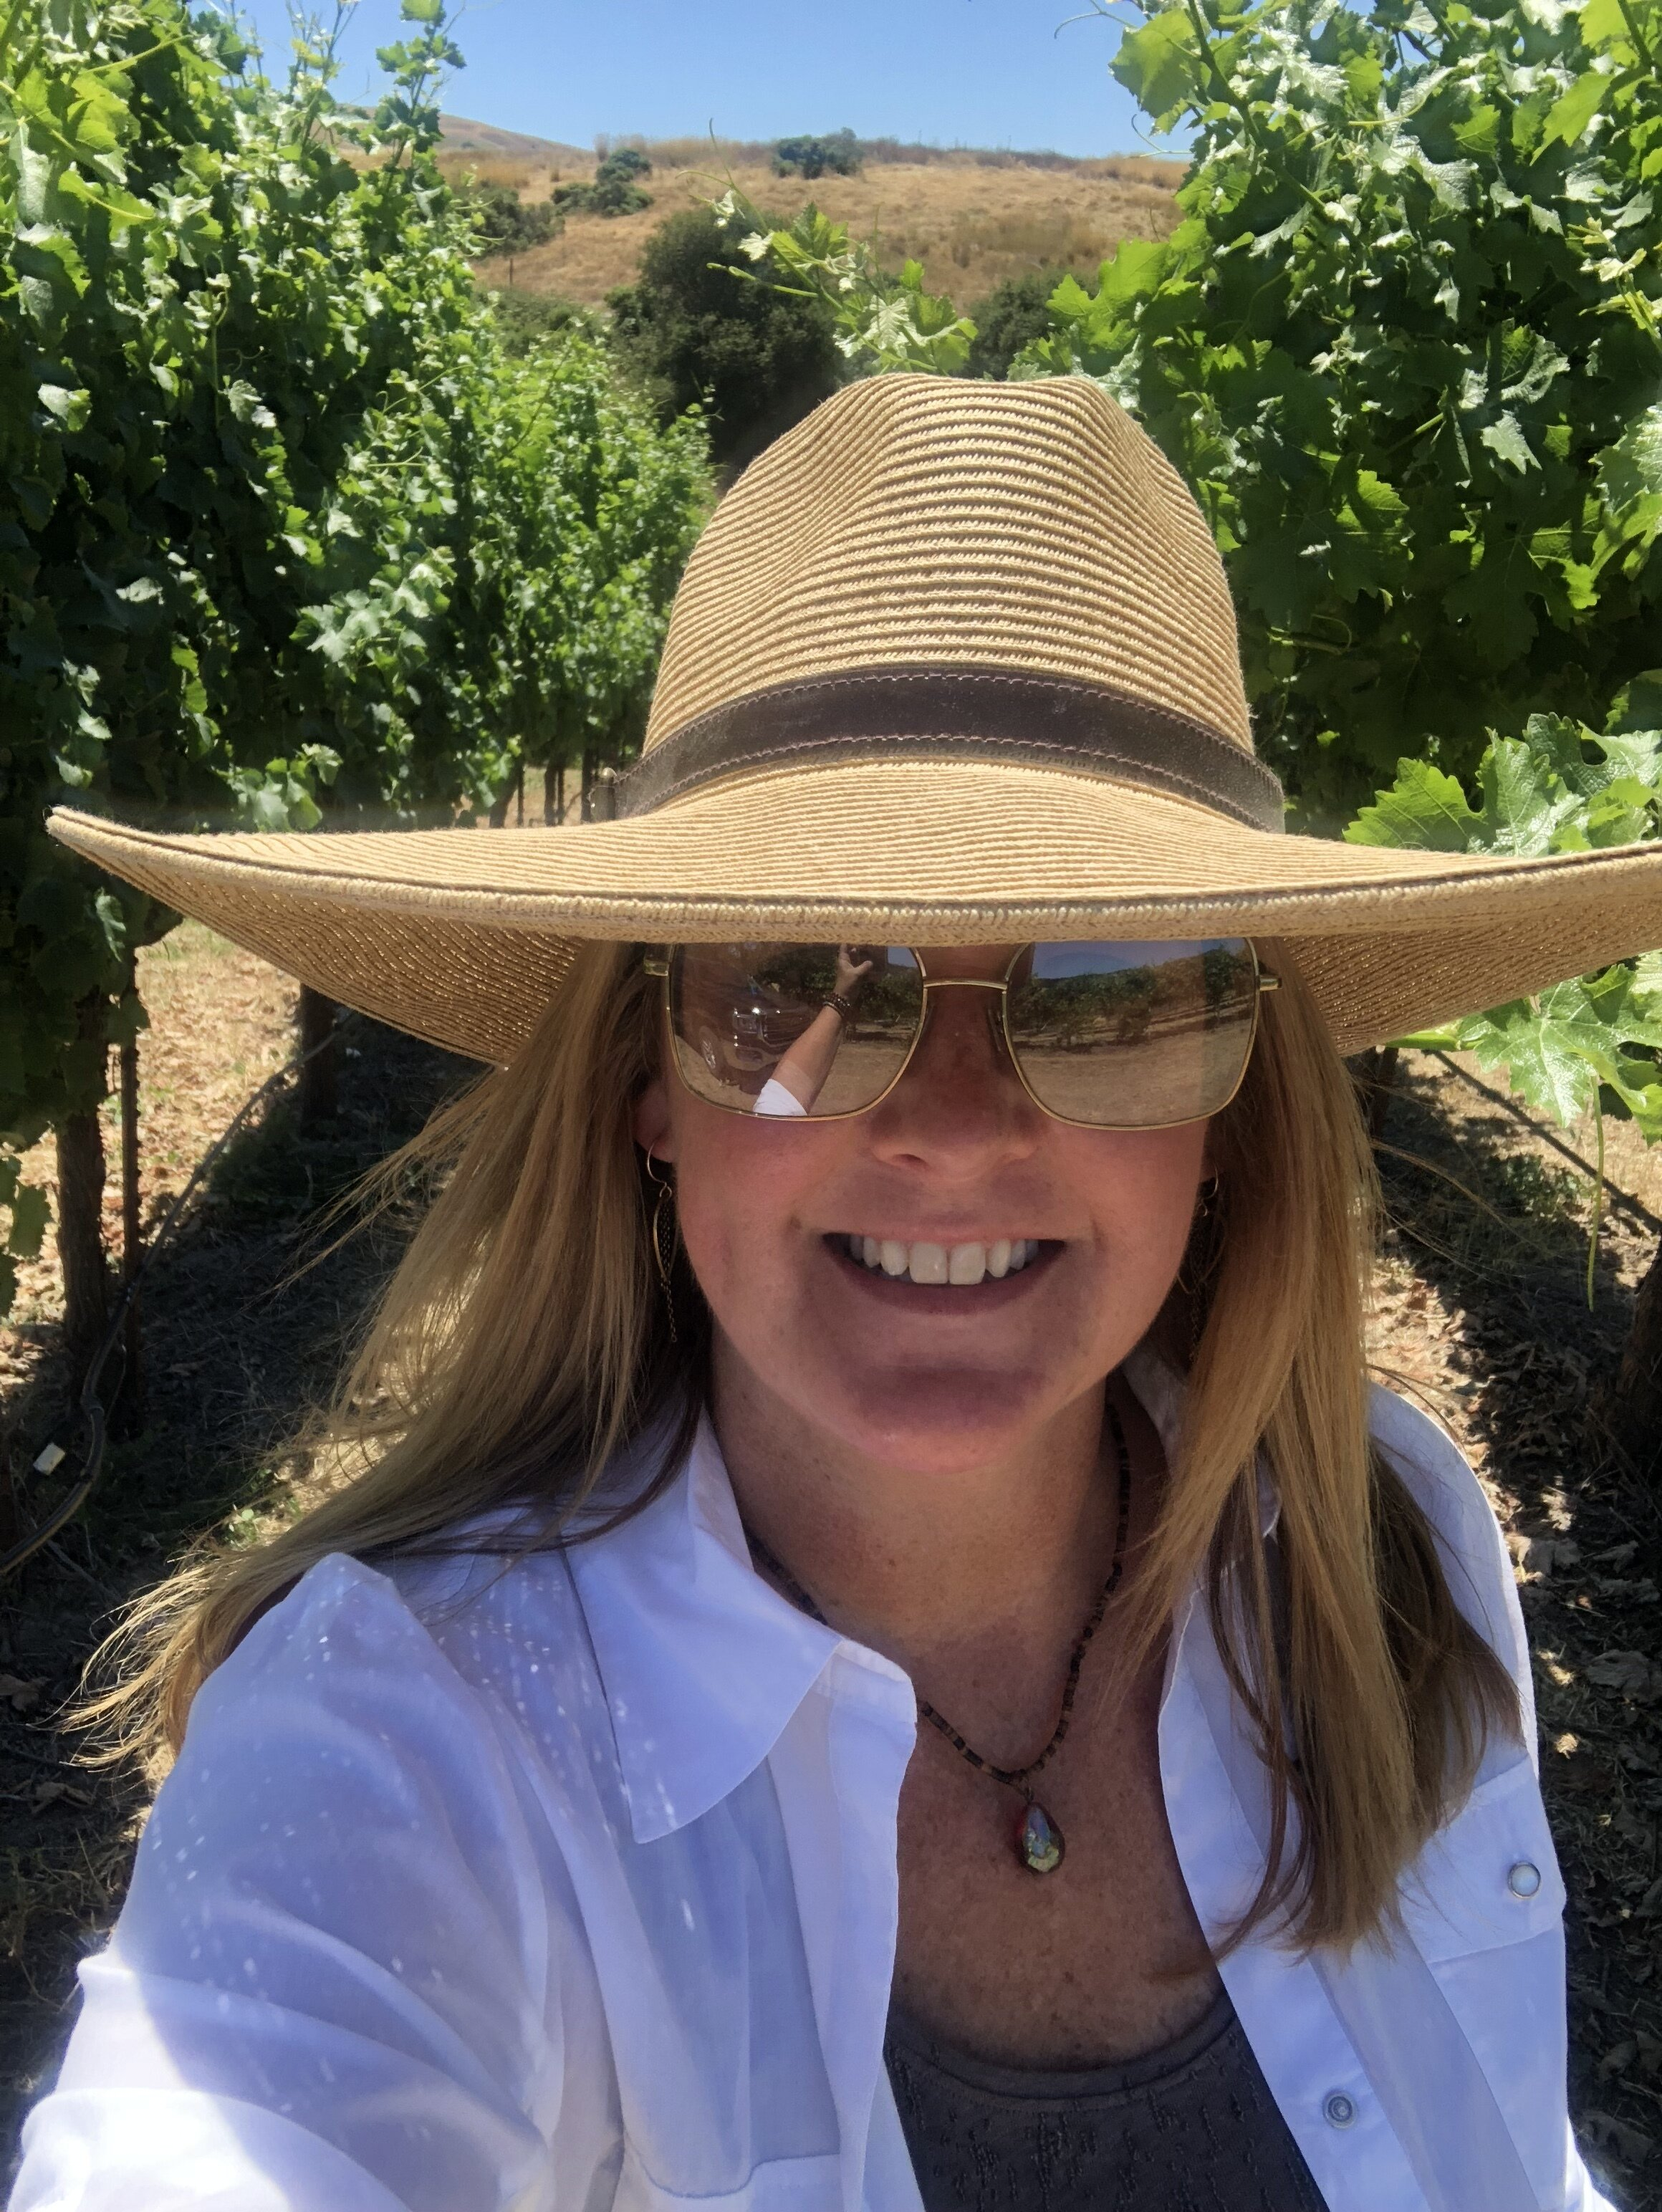 ALISON SMITH STORY, 10.11.19 - Alison is a vet in the wine industry. Today, she owns a winery, Smith Story Wine Cellars, in California with her husband Eric. Alison was a WWOW 2019 Conference speaker.